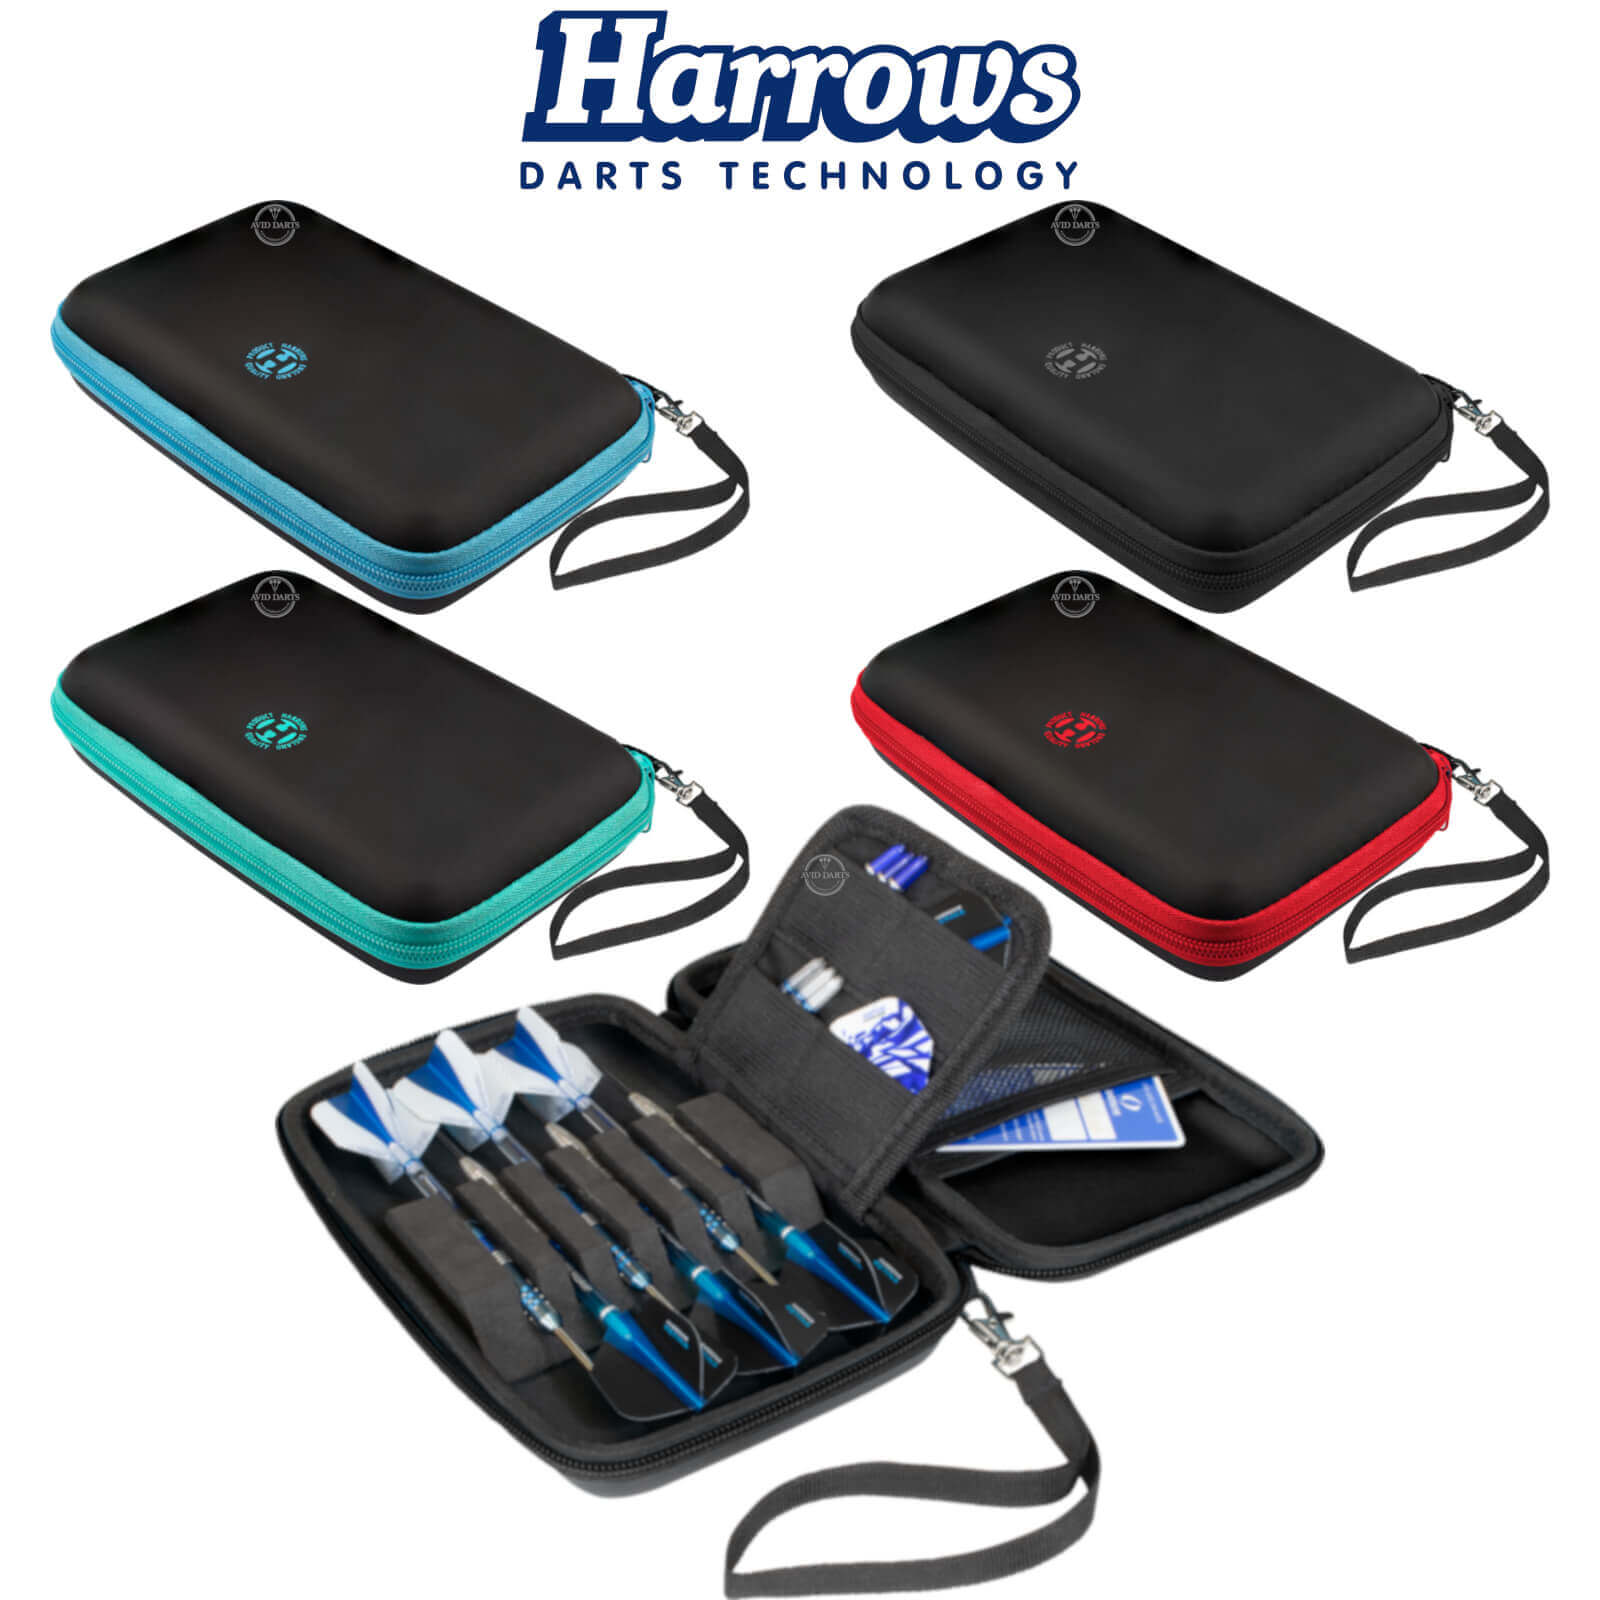 Dart Cases - Harrows - Blaze Pro 6 Dart Cases